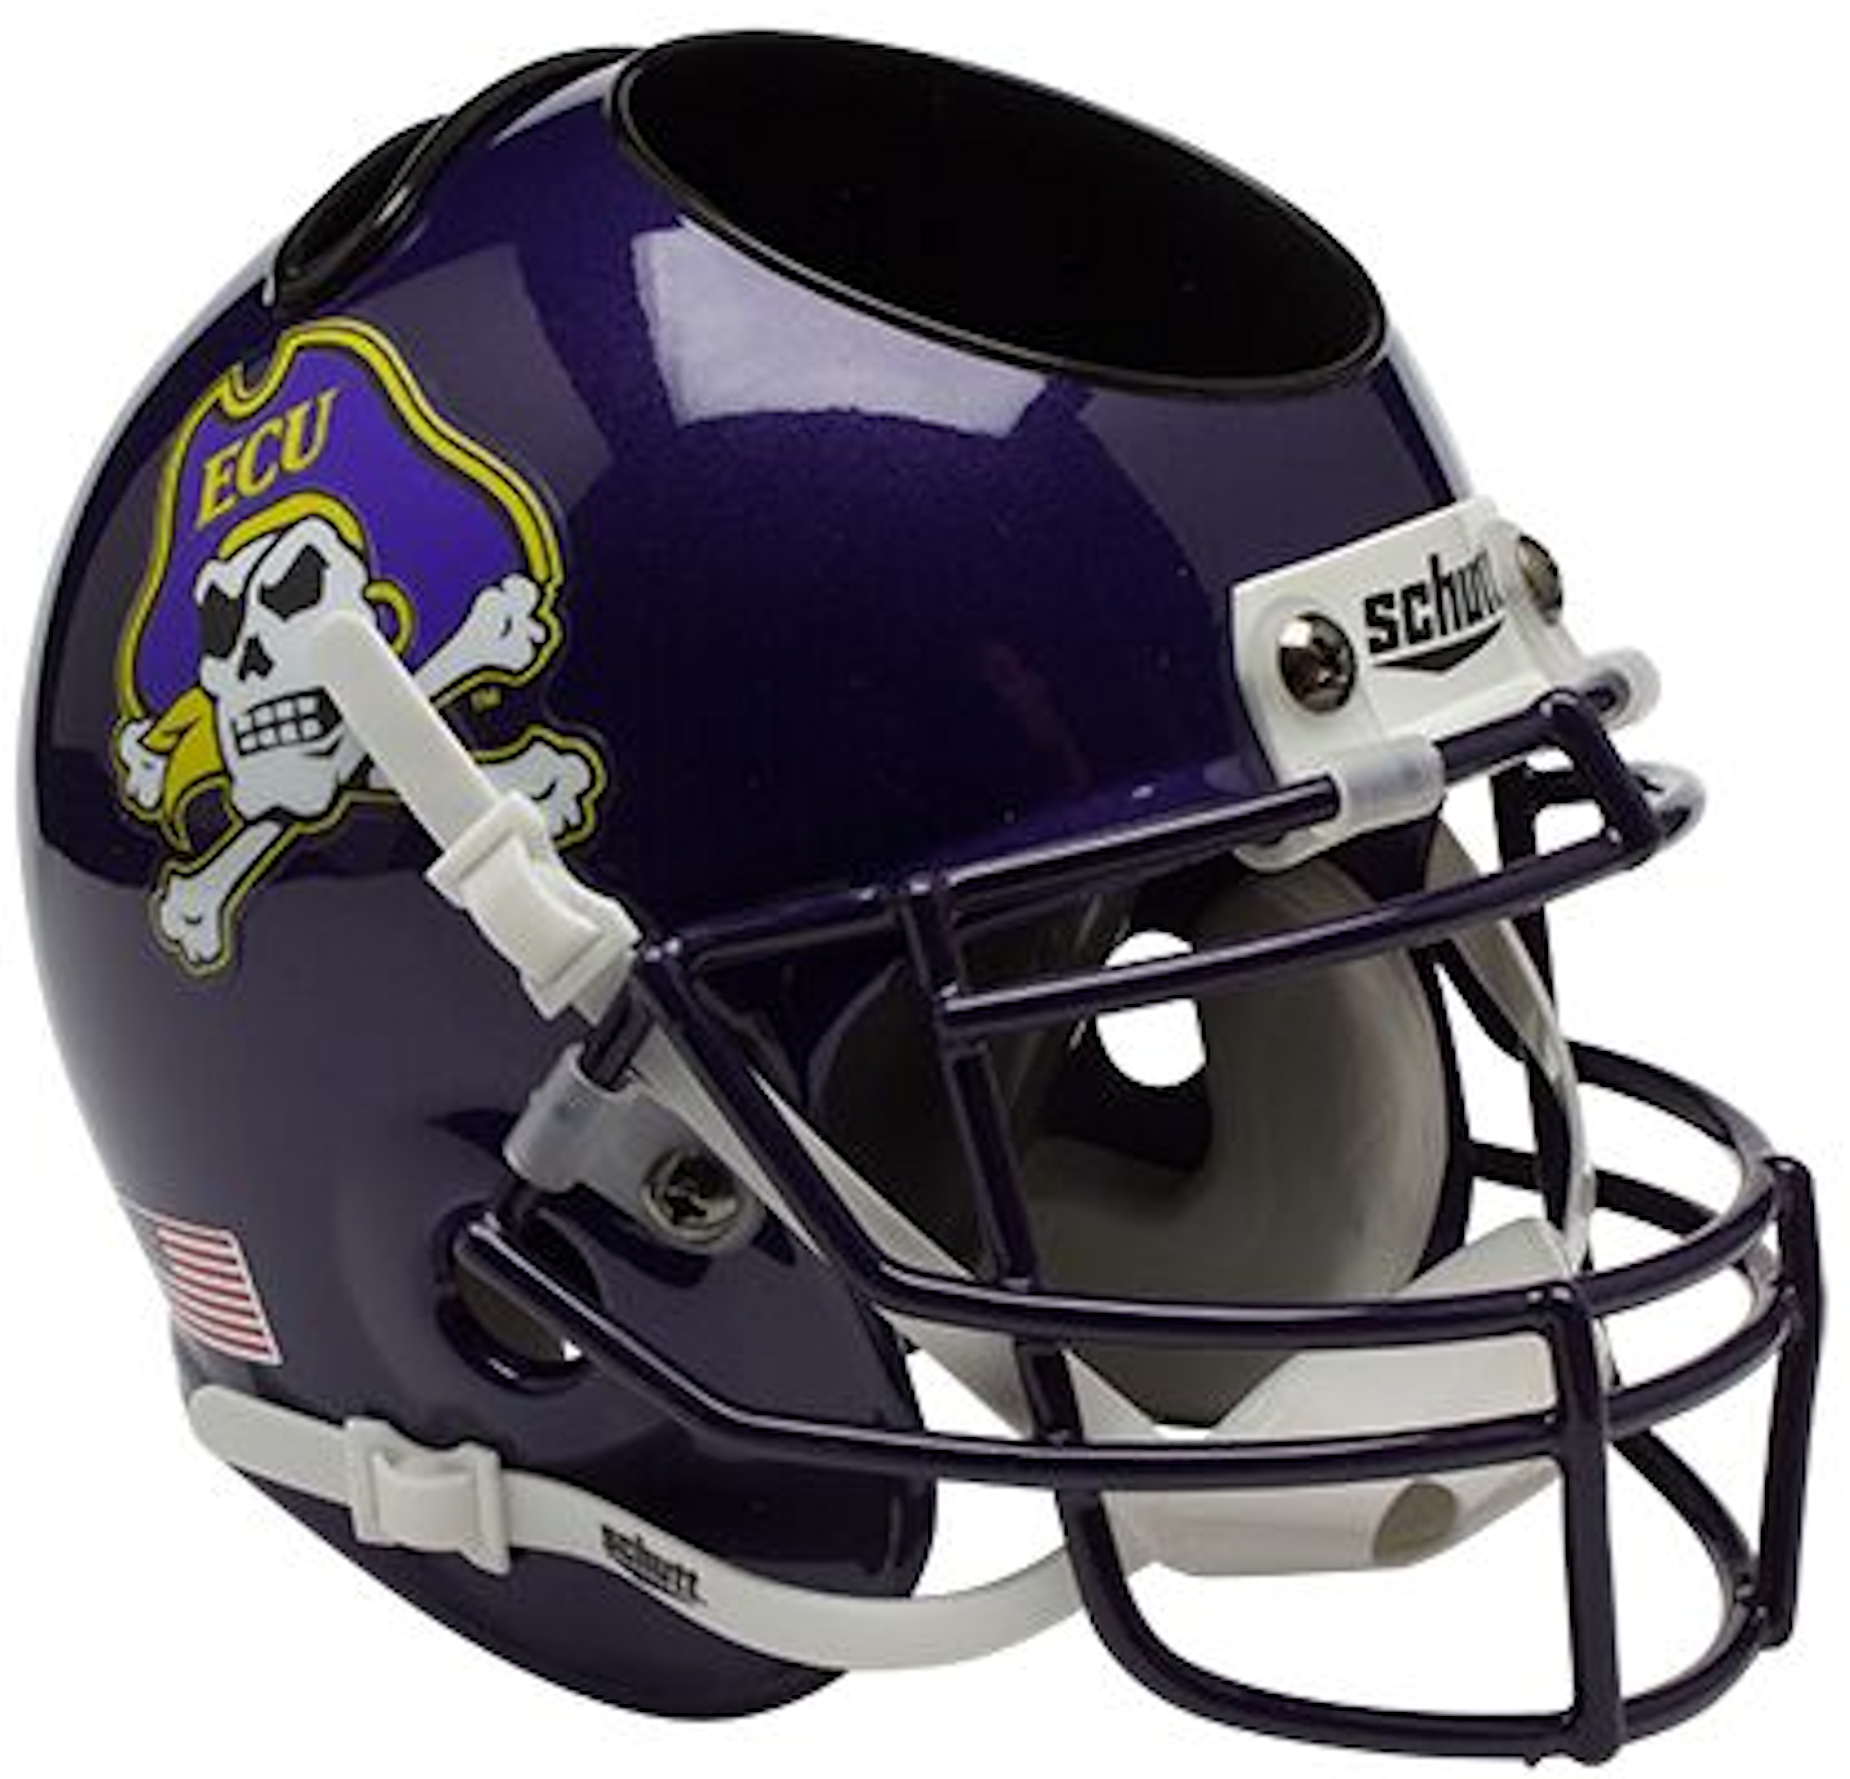 East Carolina Pirates Miniature Football Helmet Desk Caddy <B>Purple Mask</B>